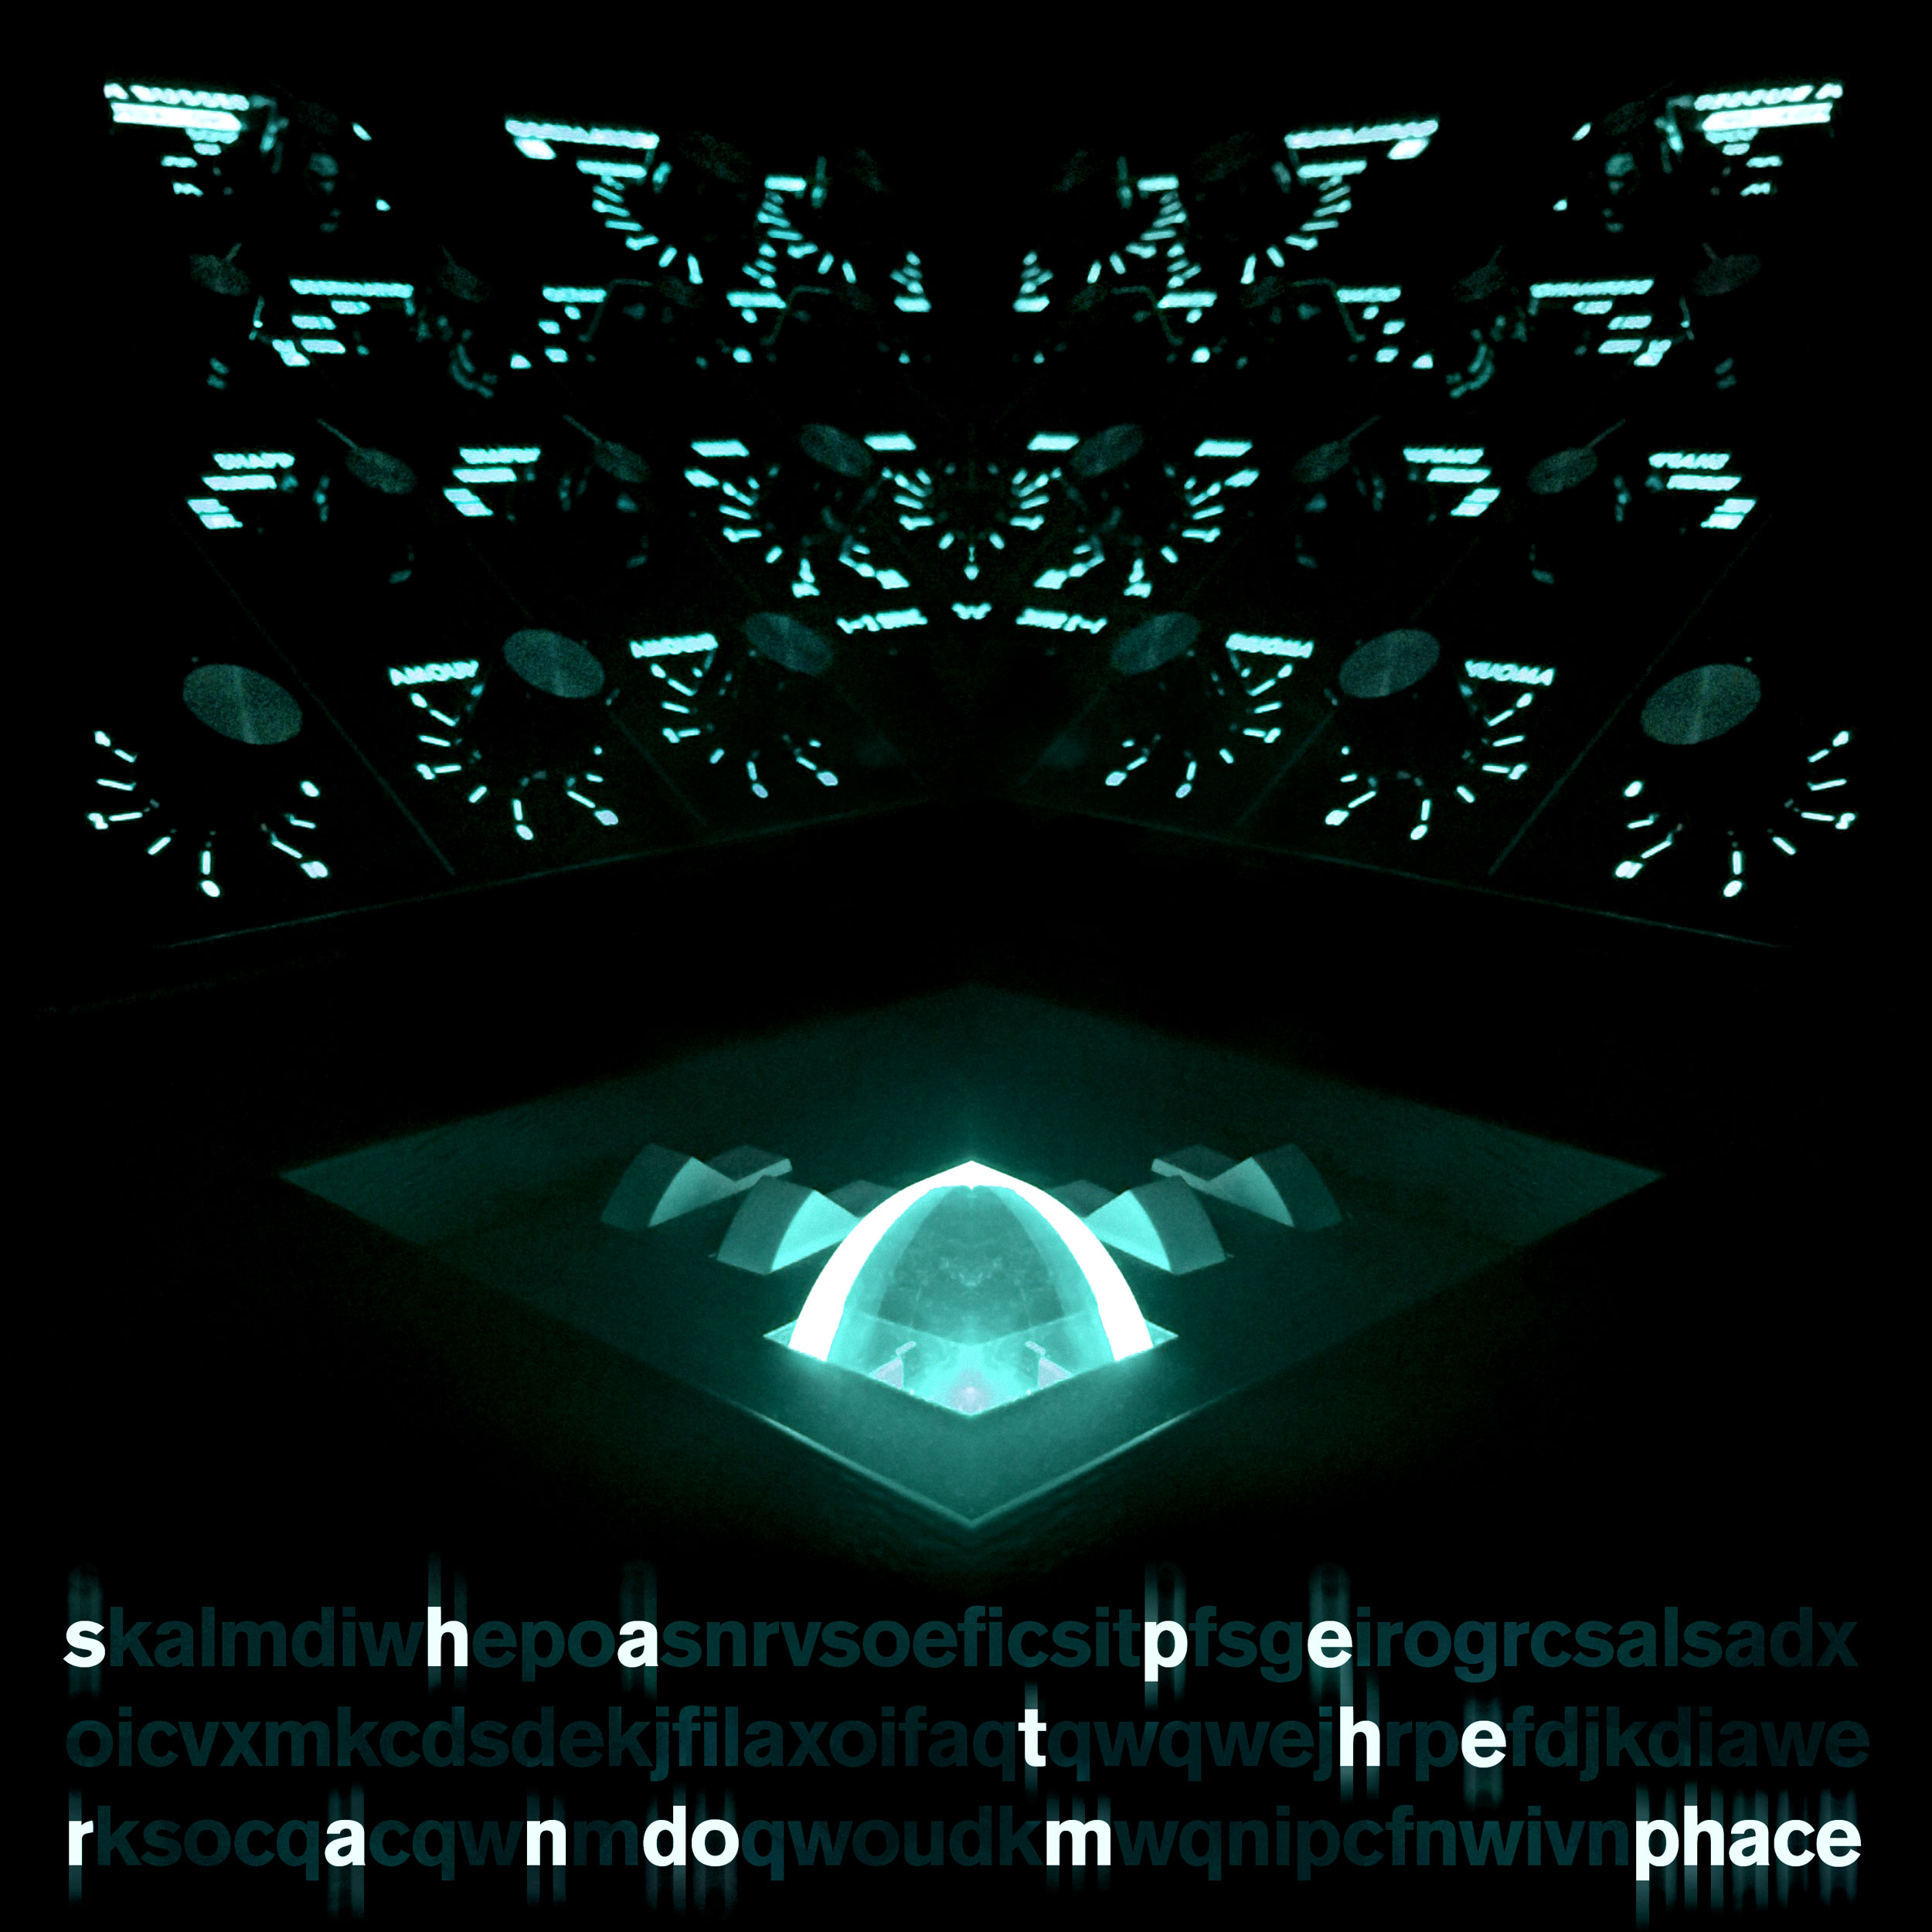 Phace/SHAPE THE RANDOM CD